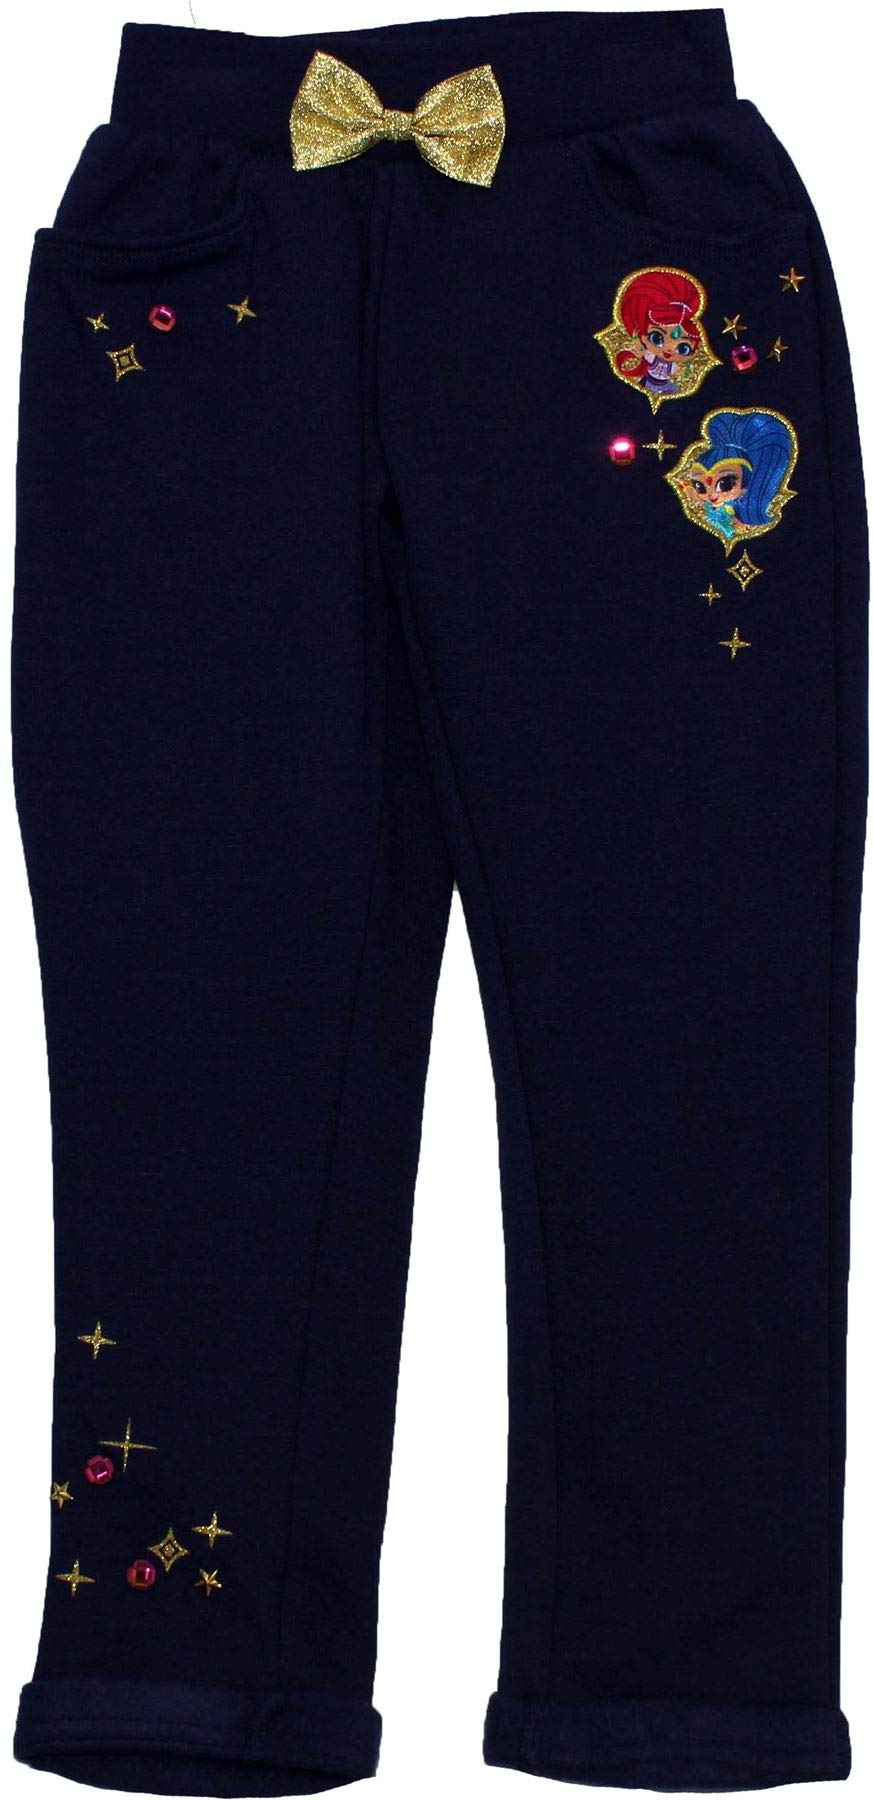 Shimmer and Shine Girls Jogging Bottom Trousers Navy 2-3 Years by Shimmer (Image #1)